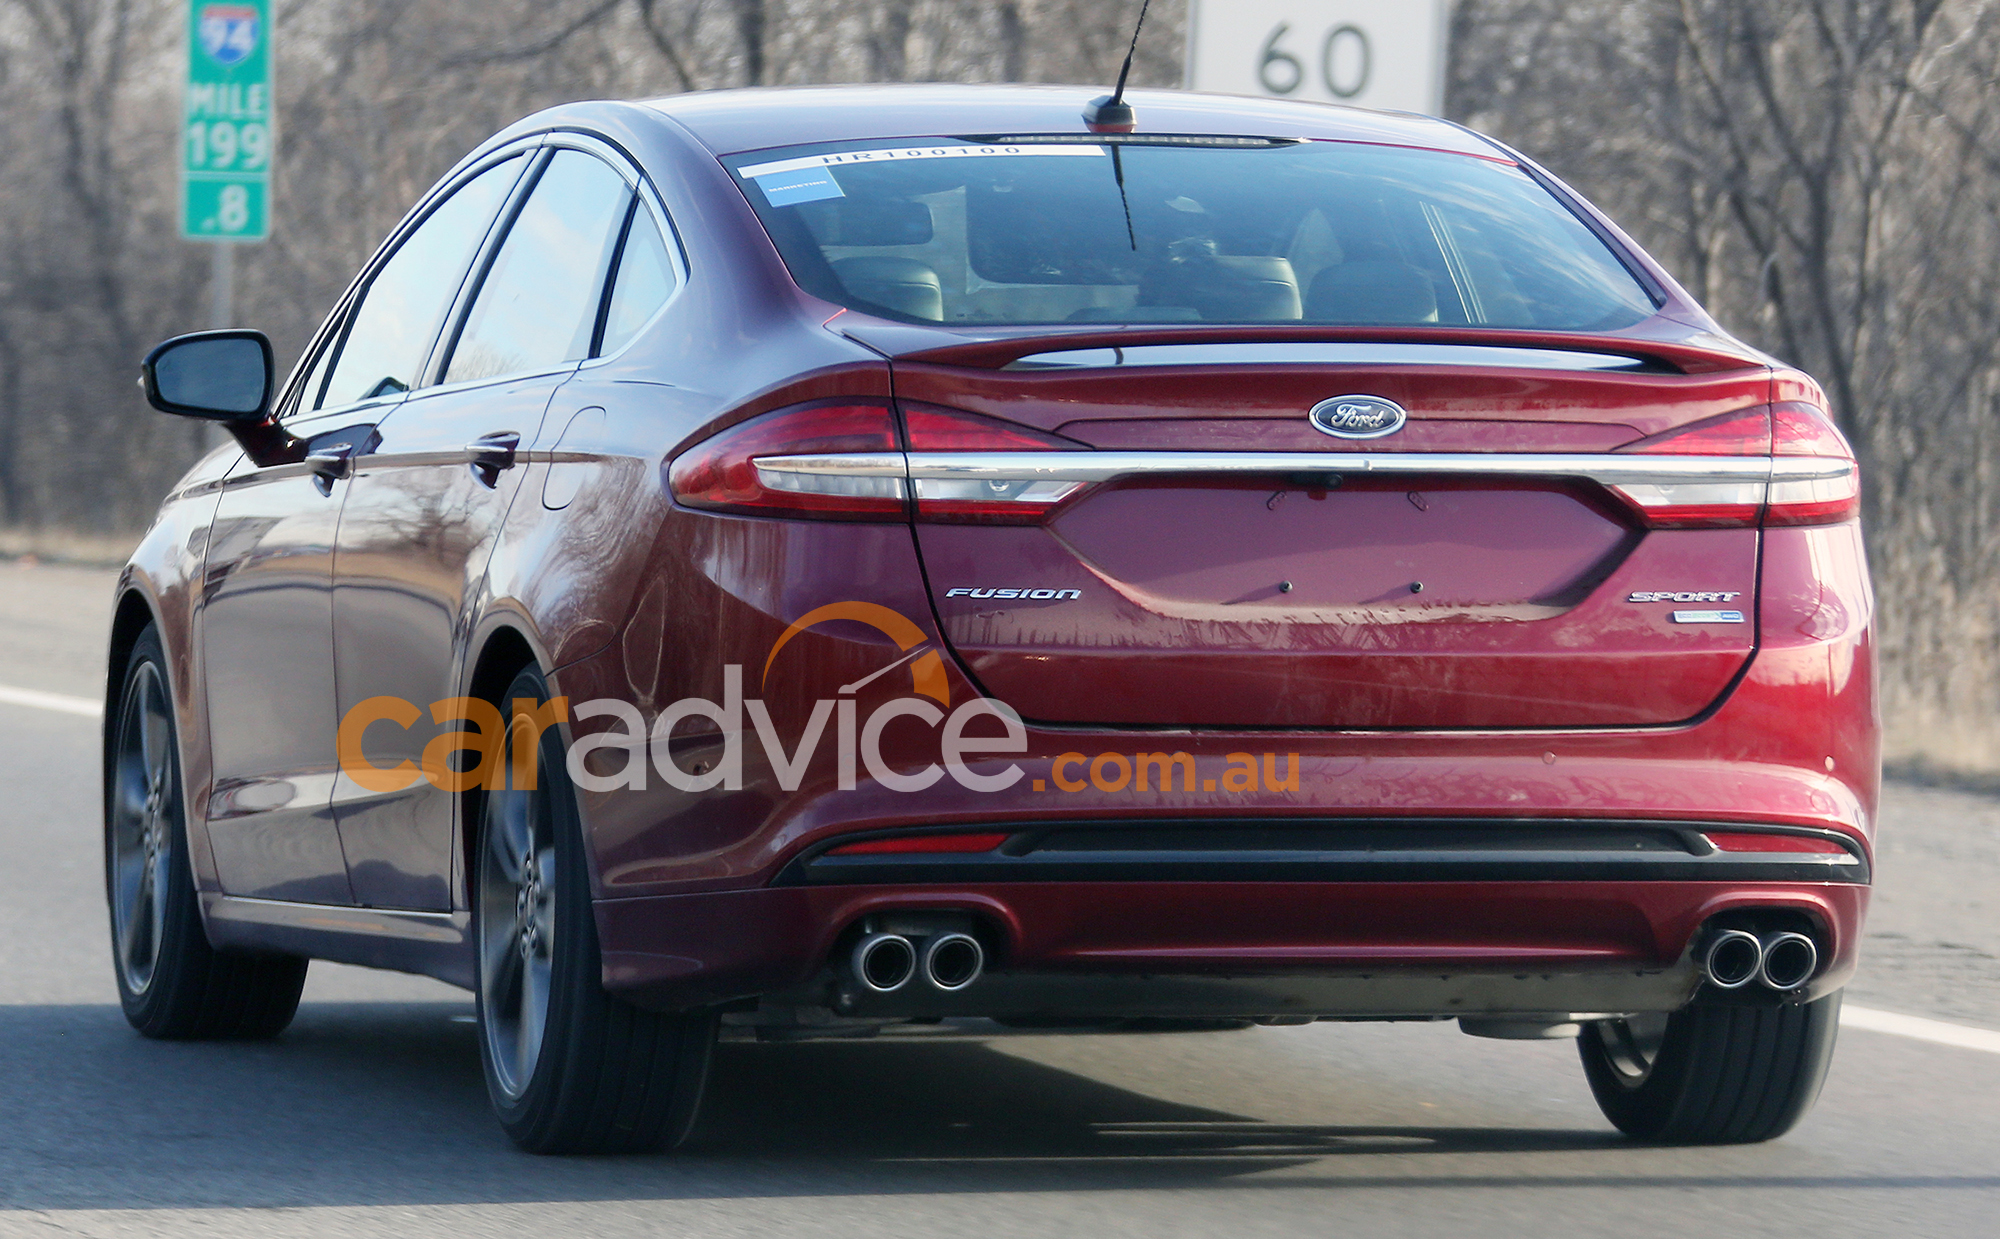 2017 Ford Mondeo Sport spied without disguise: Turbo V6 ...